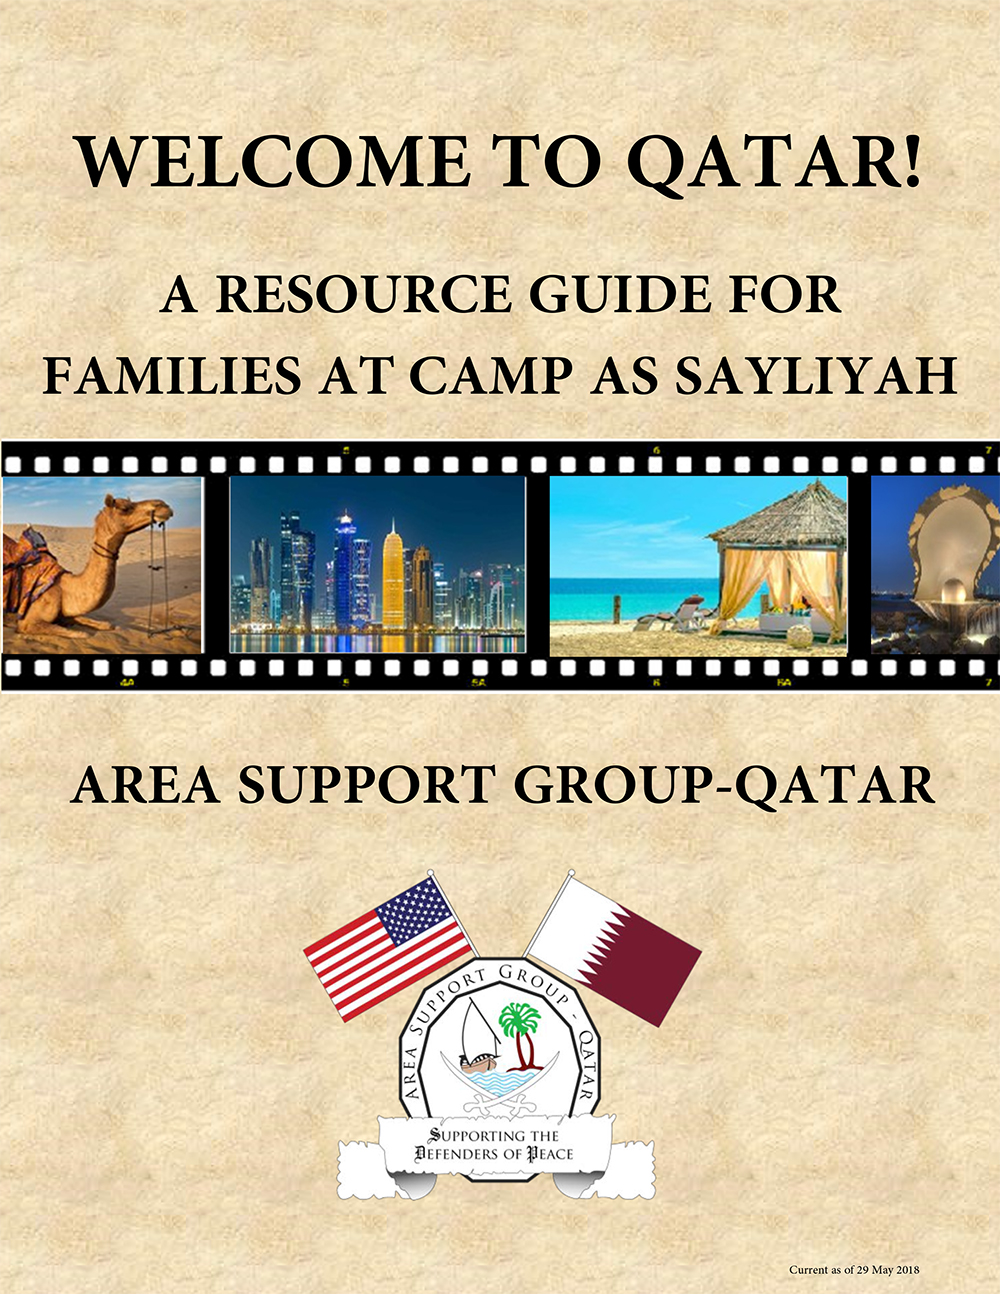 Area Support Group Qatar | U S  Army Central